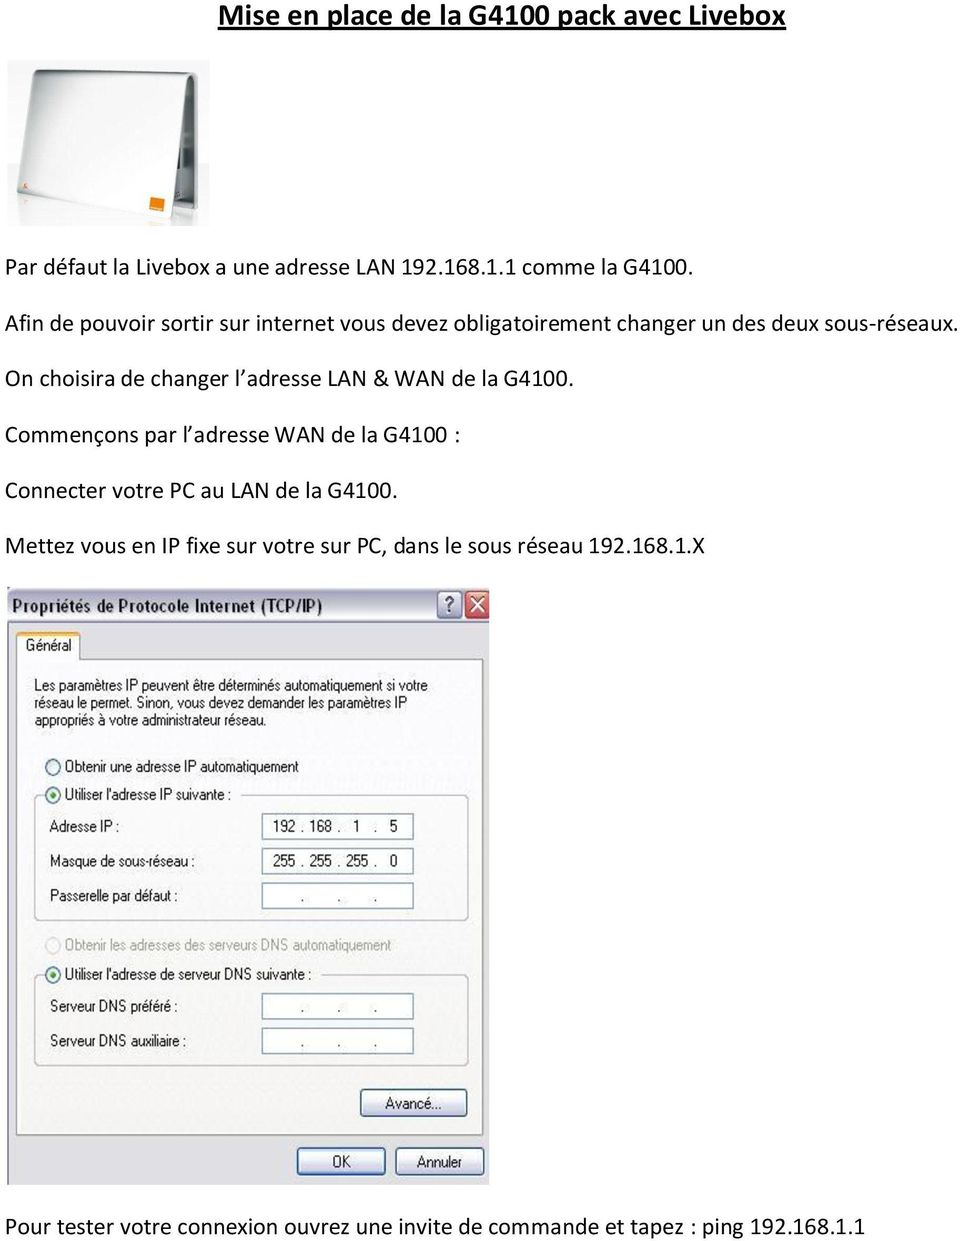 On choisira de changer l adresse LAN & WAN de la G4100.